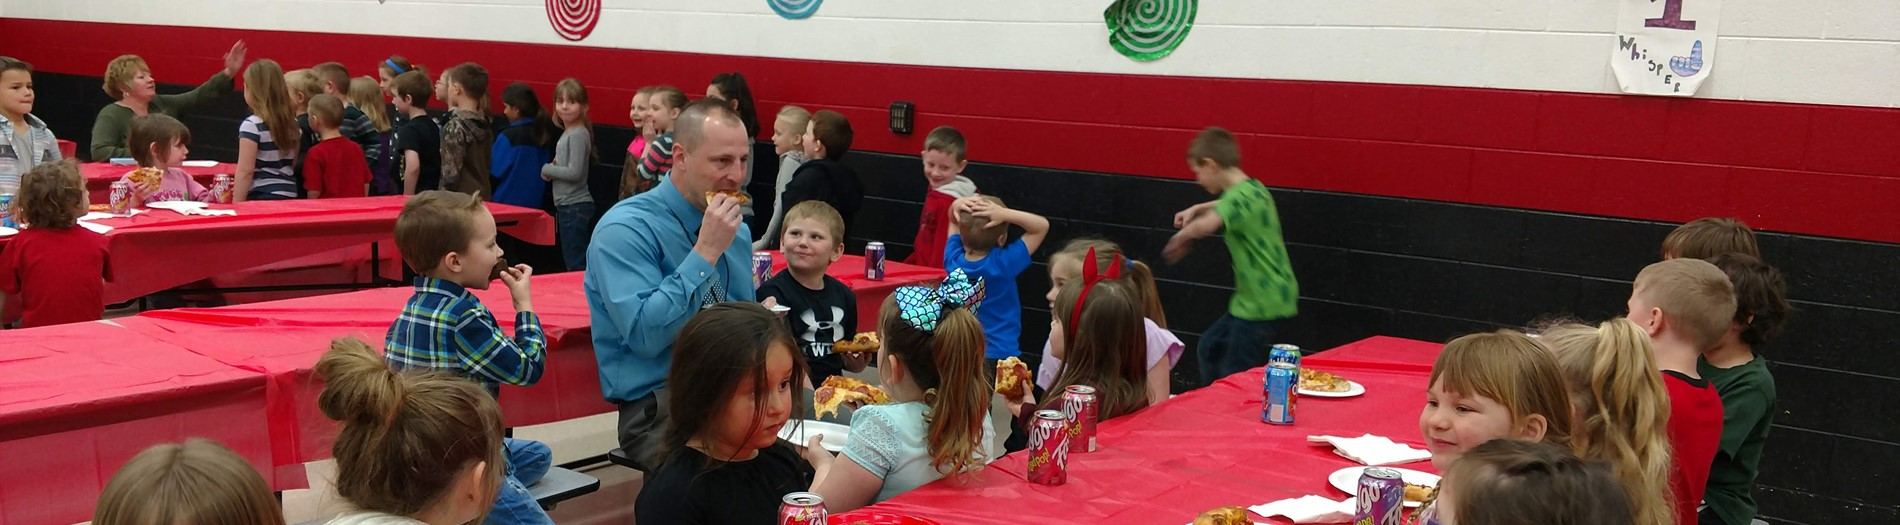 Principal with kids at lunch.